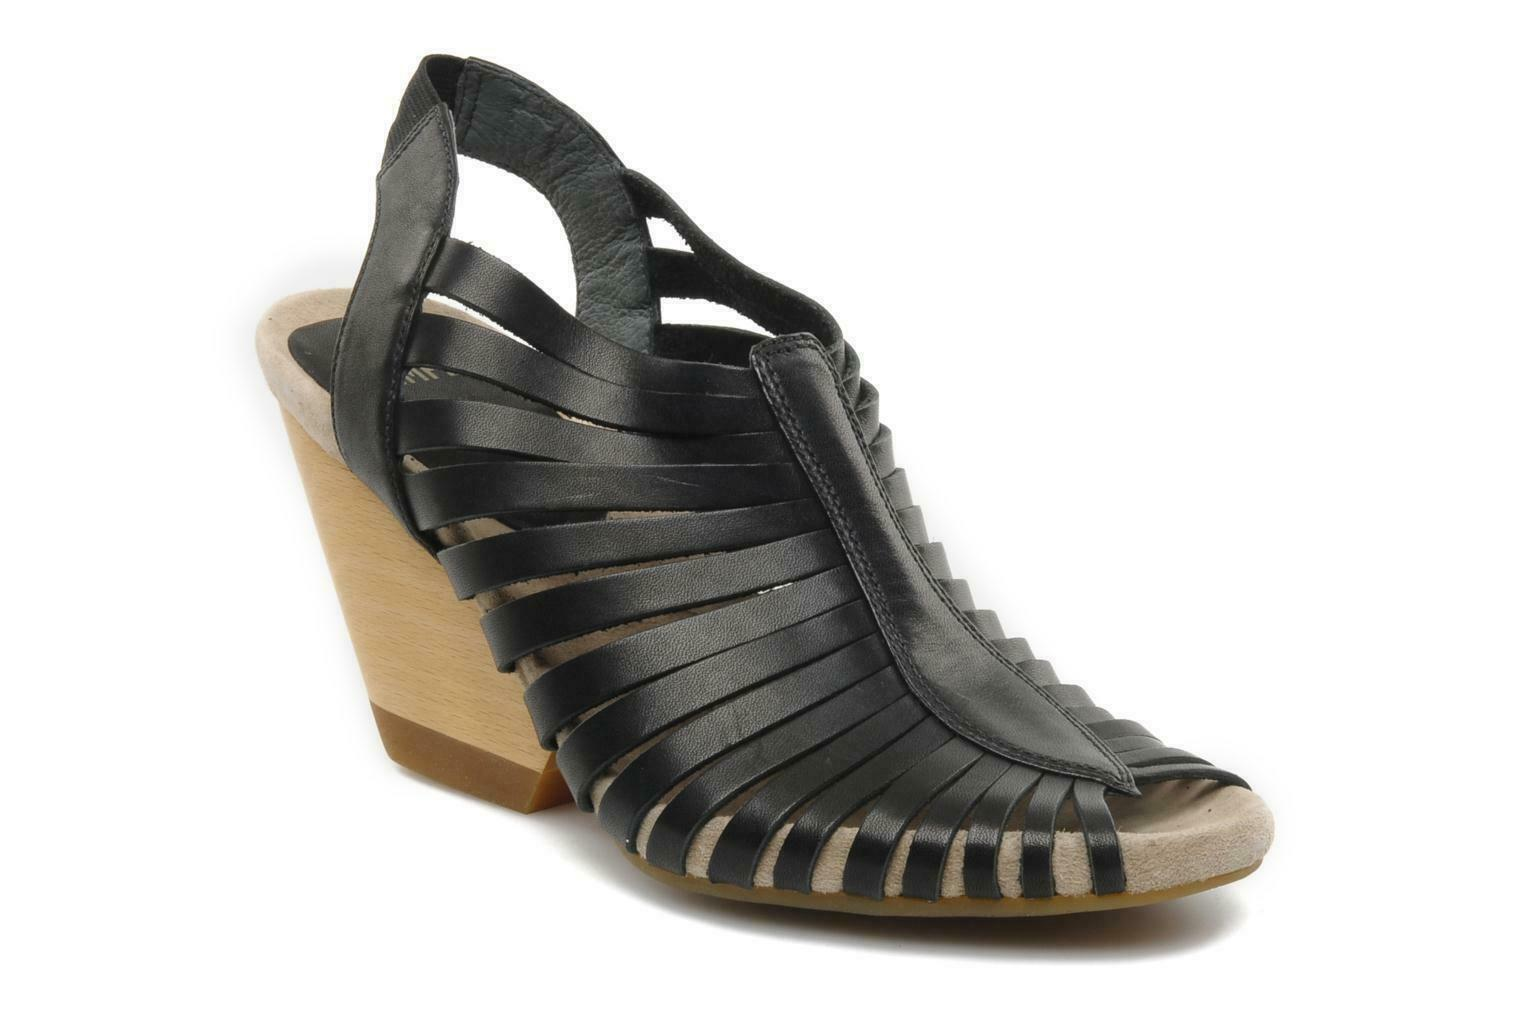 CAMPER RACHAEL DESIGNER BLACK LEATHER WEDGE SANDALS UK 7 EUR 40 BNWOB